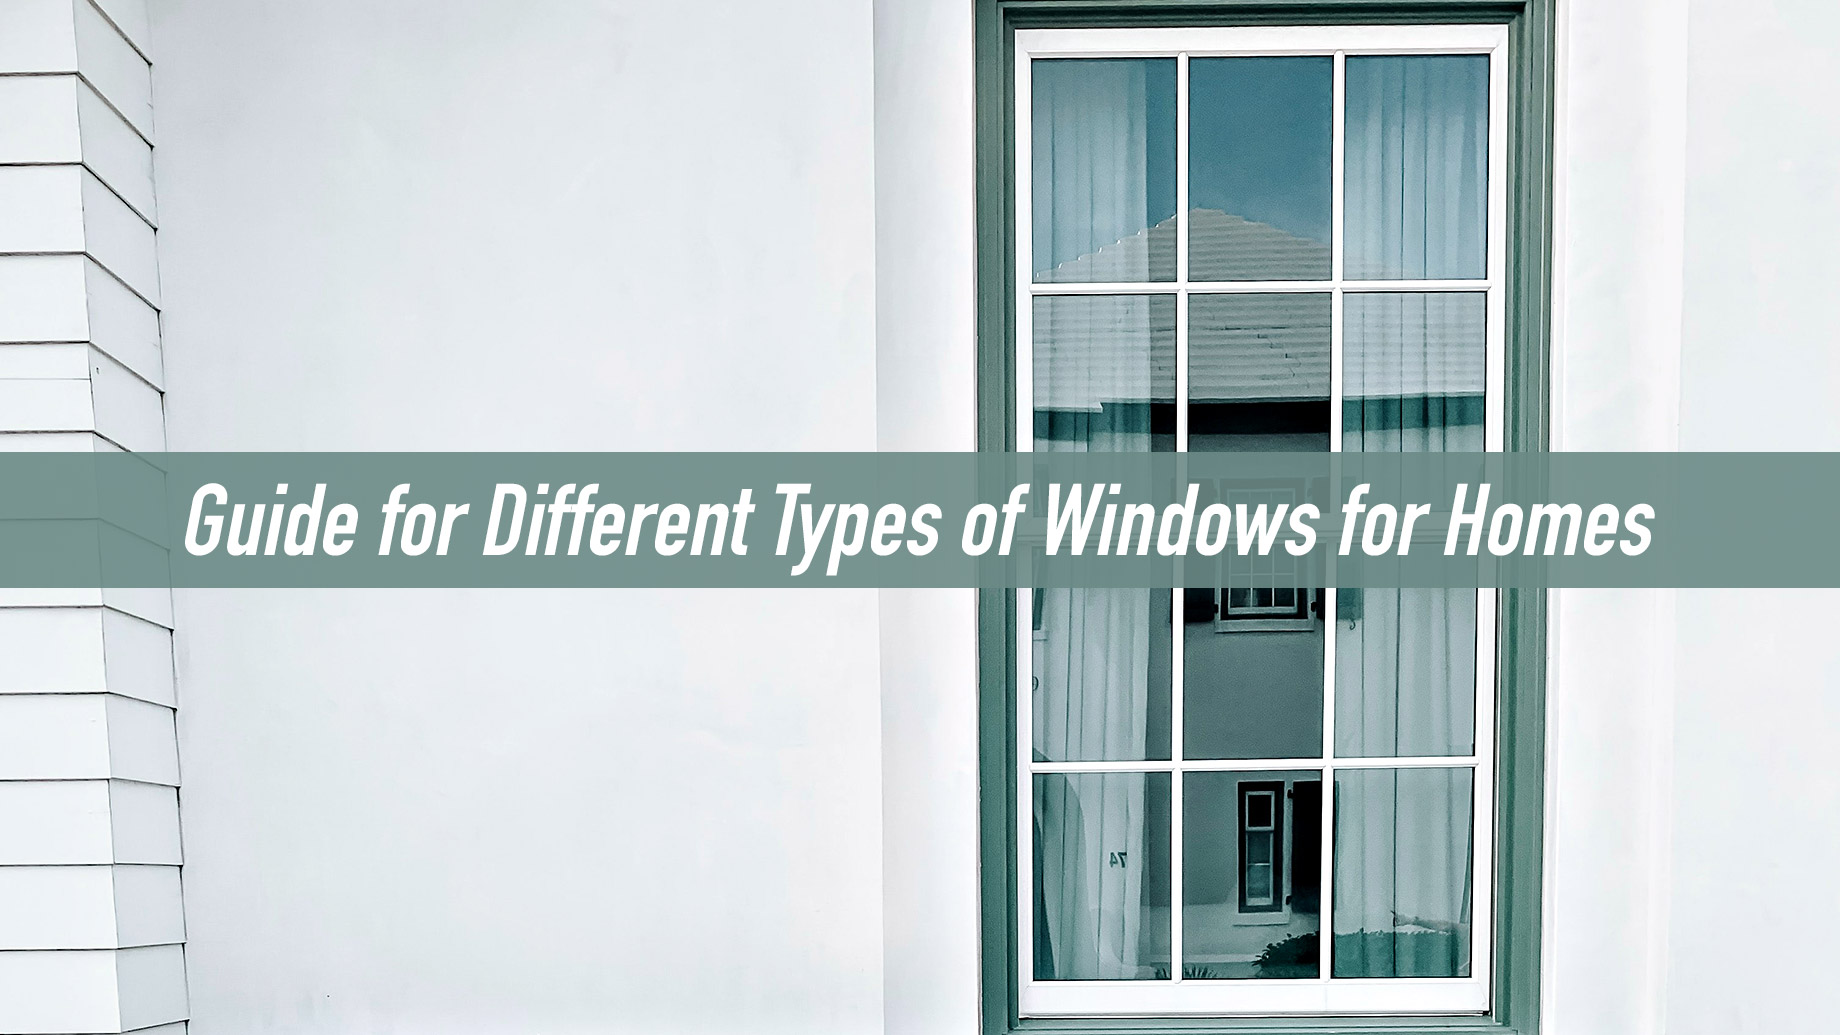 Guide for Different Types of Windows for Homes